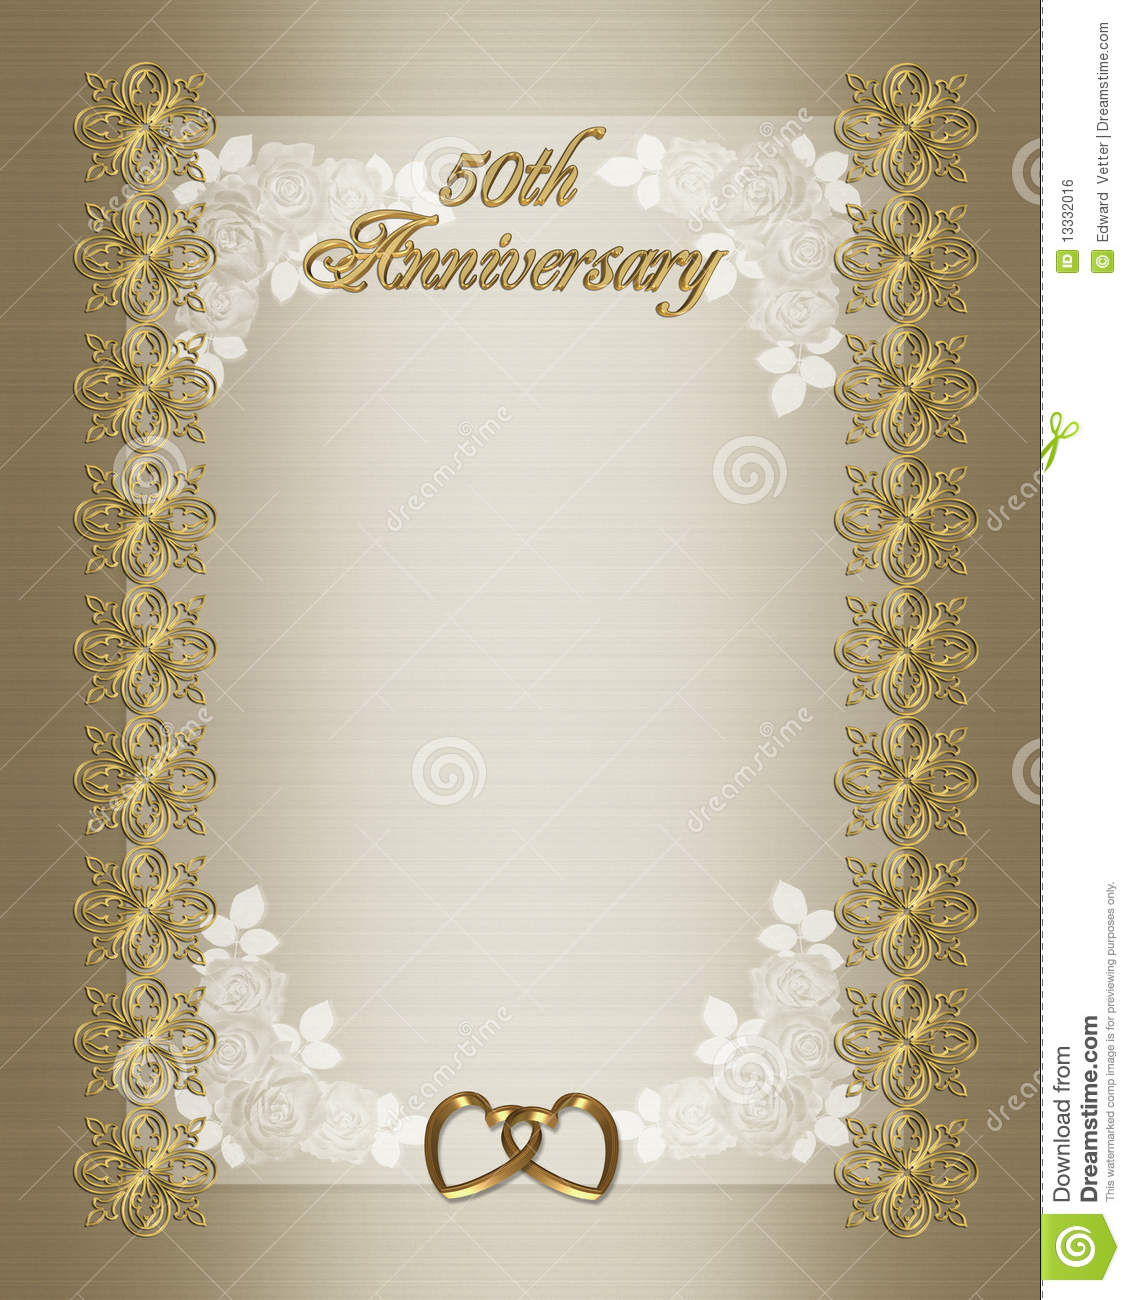 50th Wedding Anniversary Invitation Template Stock Illustration ...